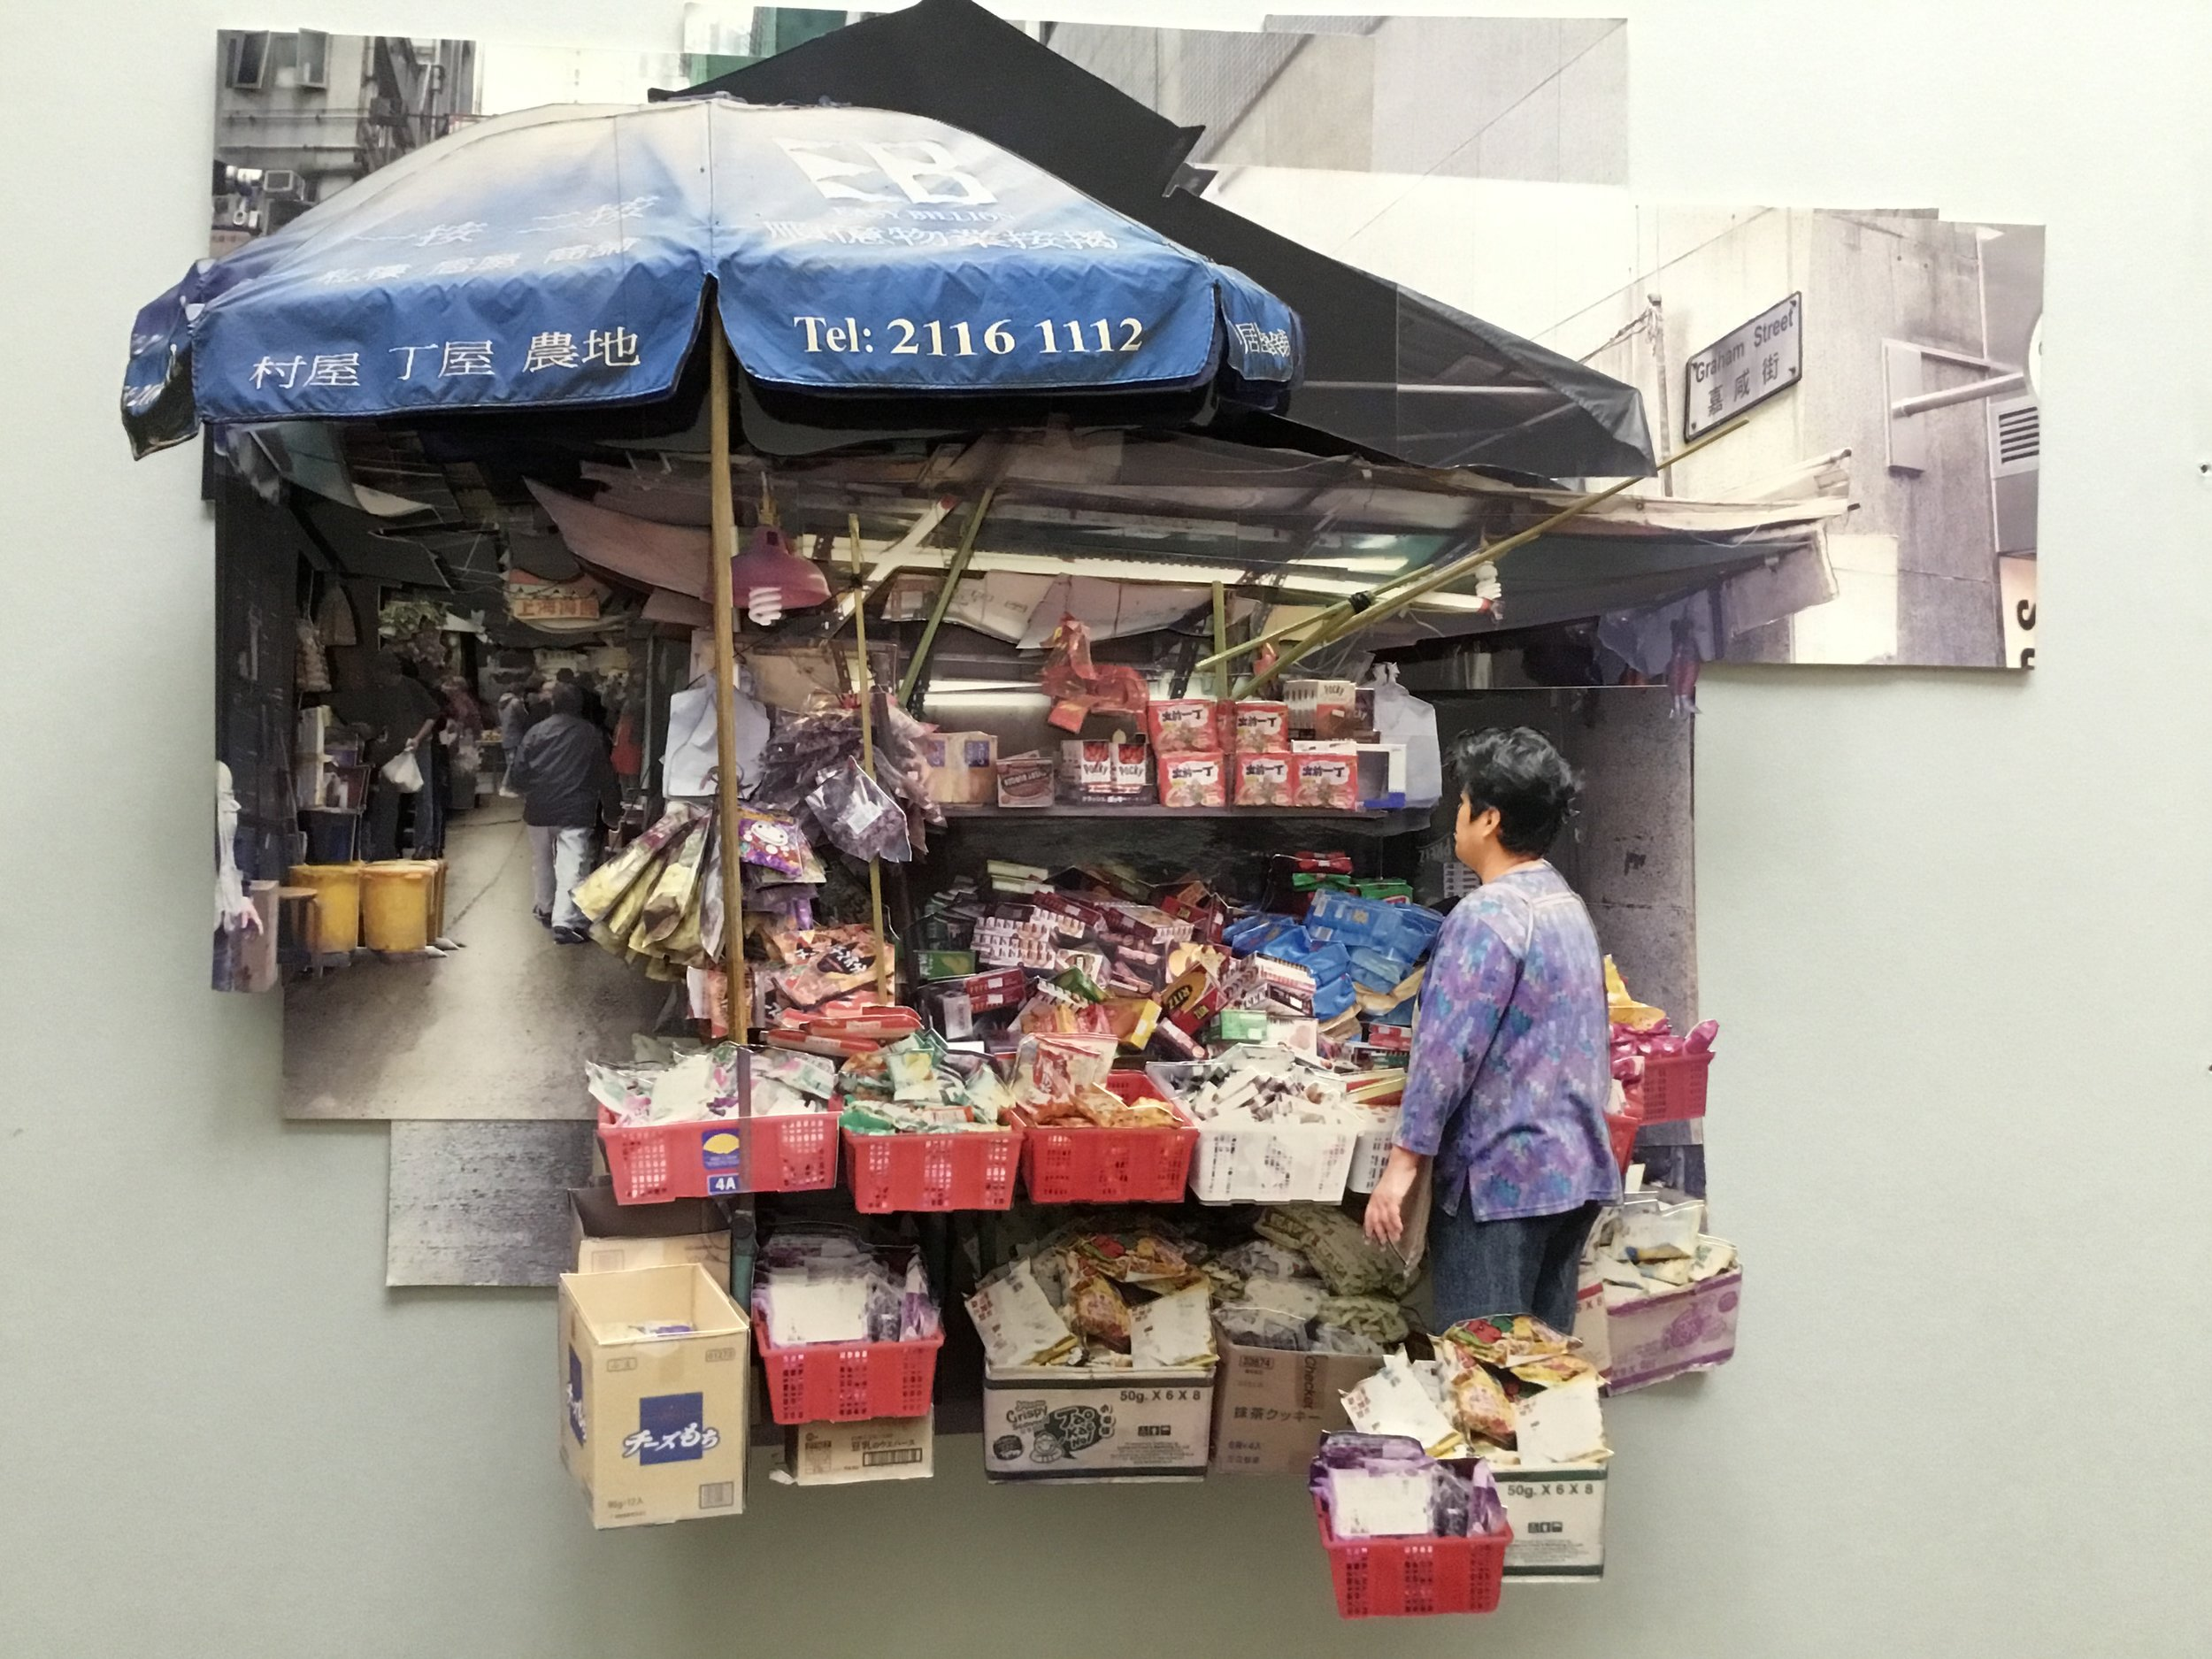 葉家偉 Alexis Ip '中環嘉咸街蜃食檔 Snack Stall at Graham Street (Central)' (Hong Kong, 2017) Courtesy of Blue Lotus Gallery.JPG